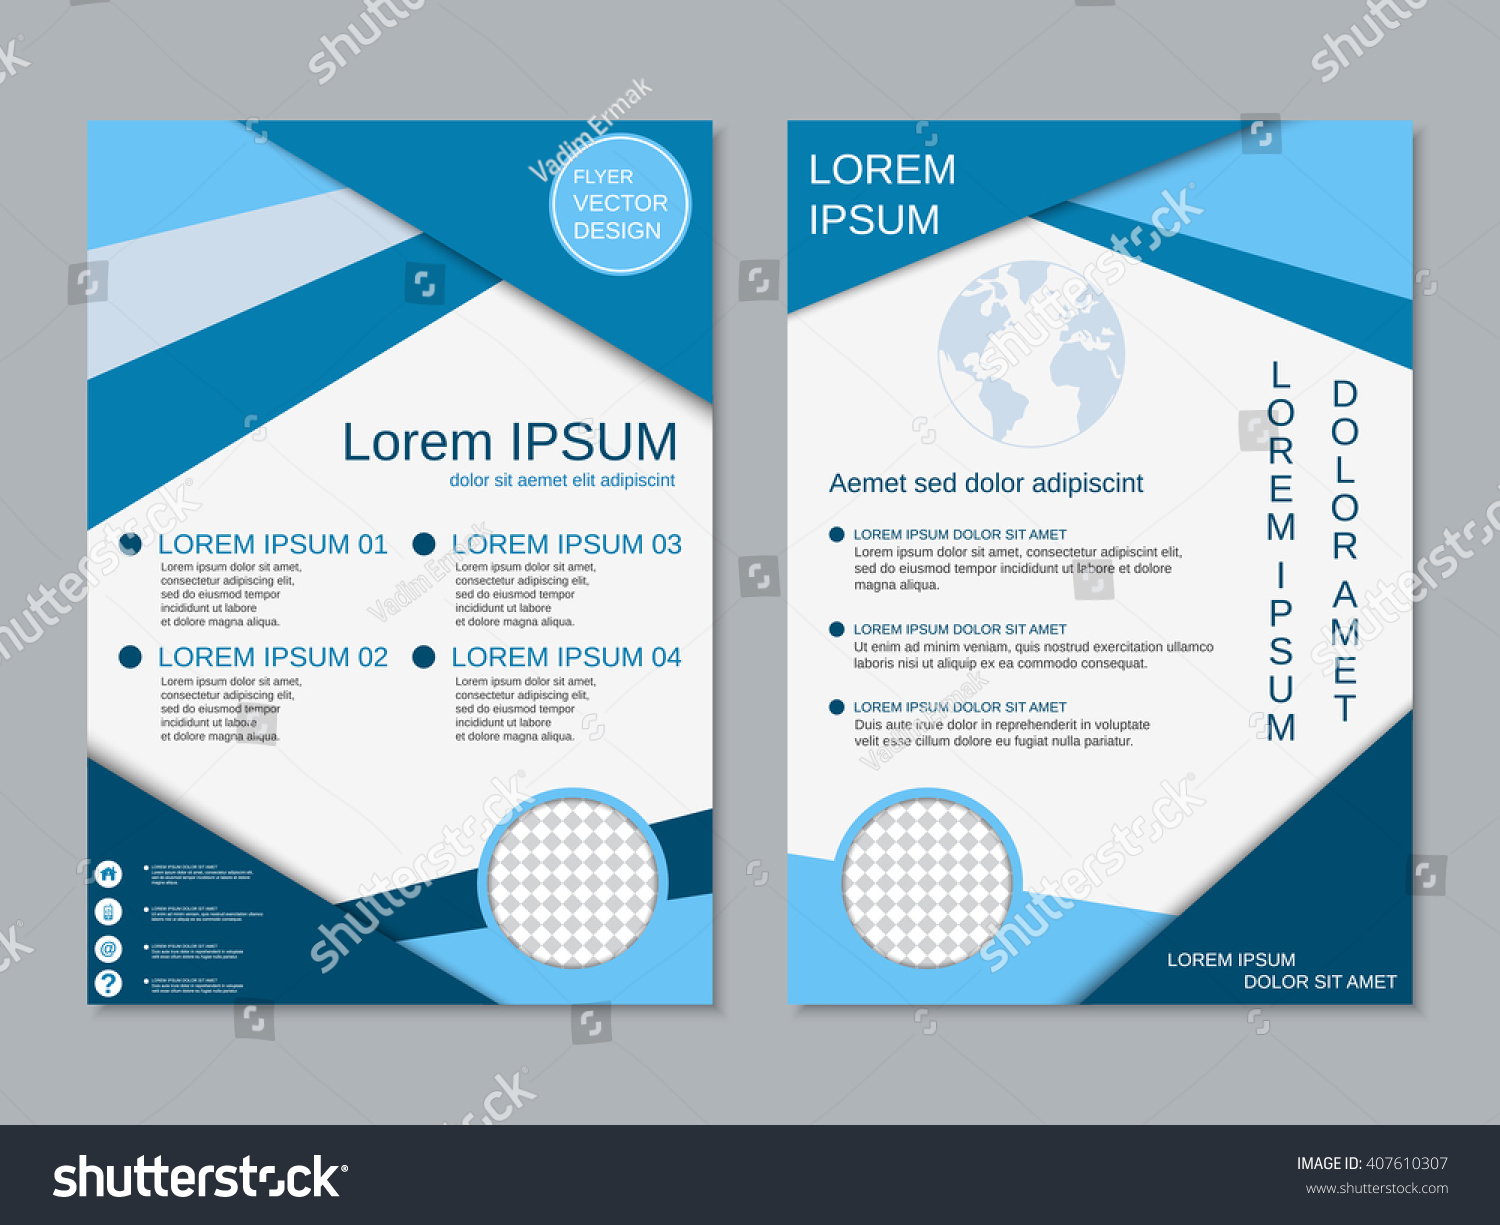 royalty free modern two sided flyer vector design 407610307